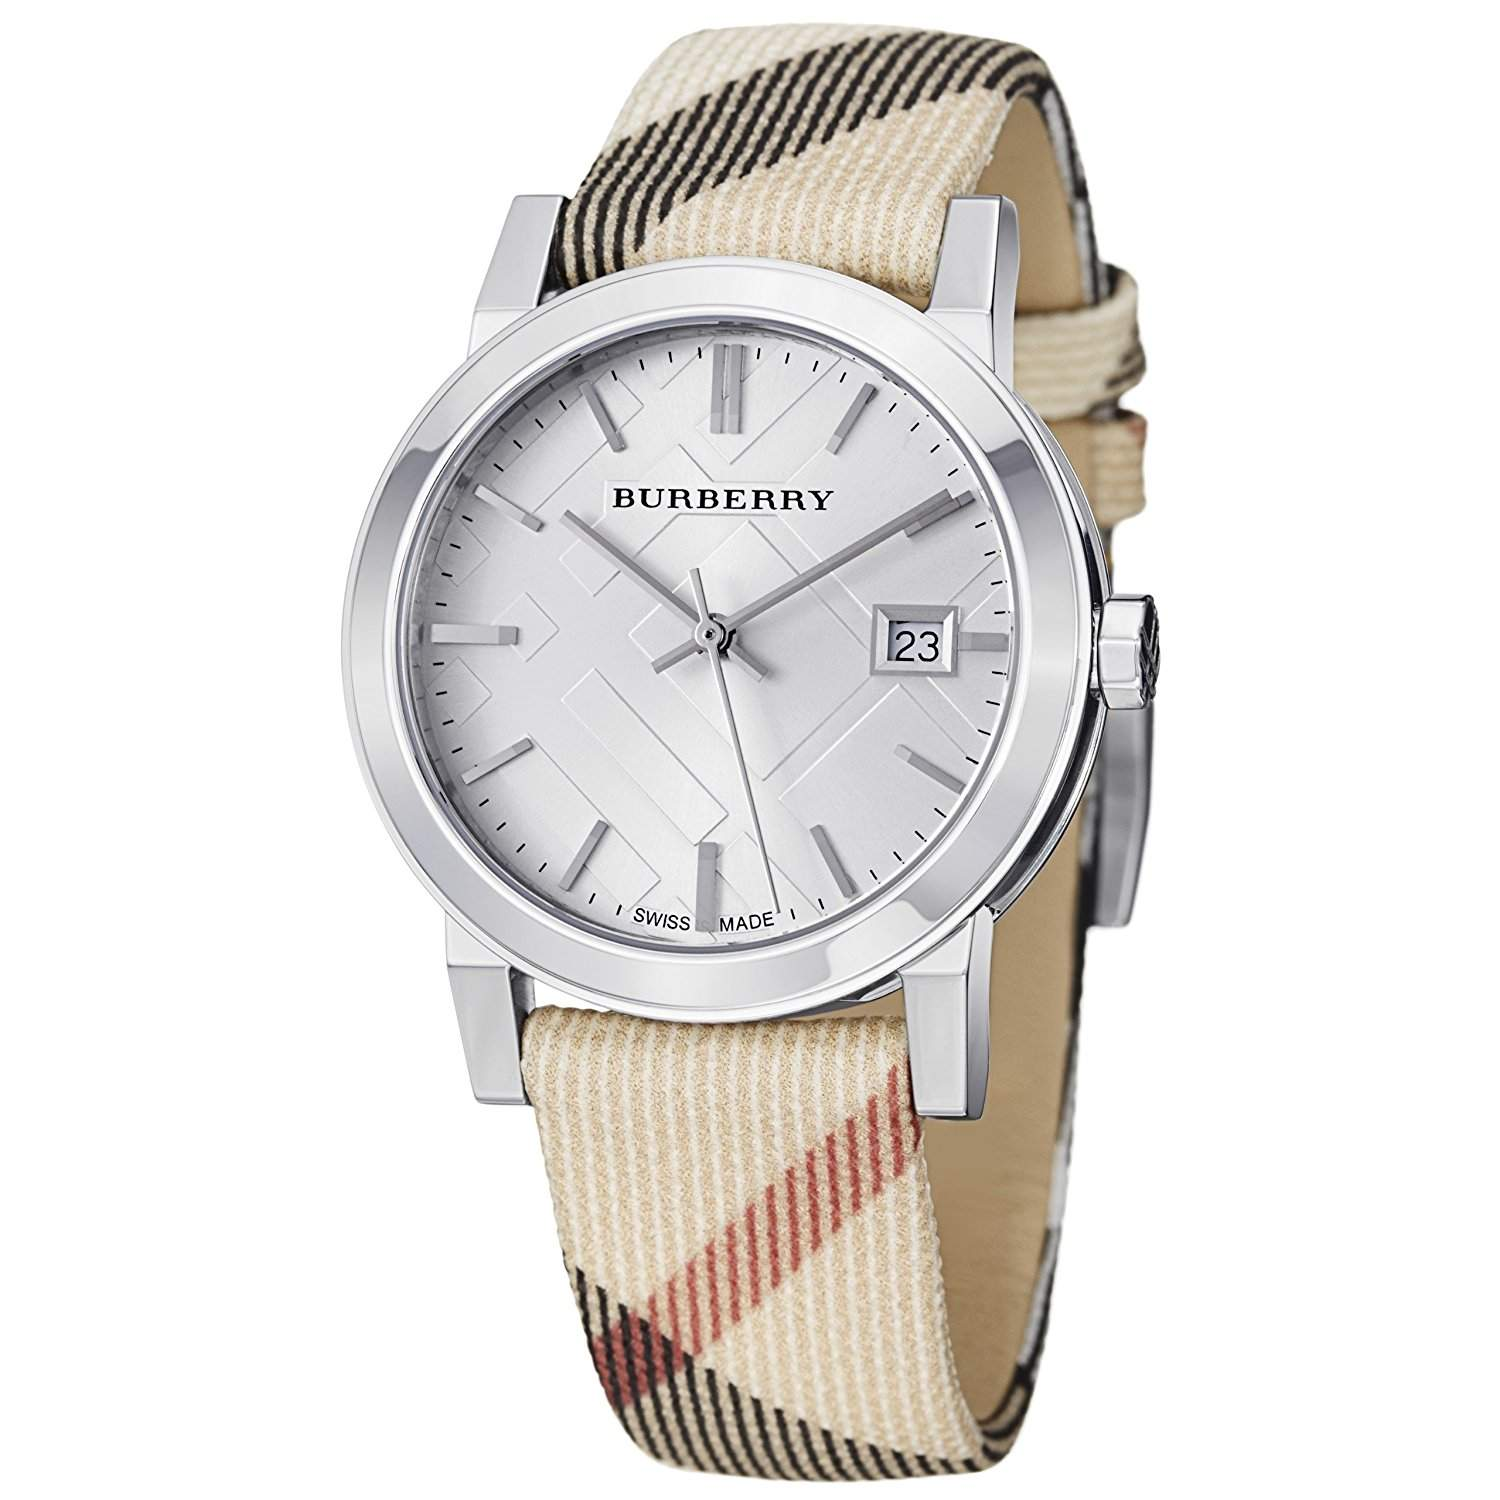 ORIGINAL BURBERRY FRAUENUHR BU9113